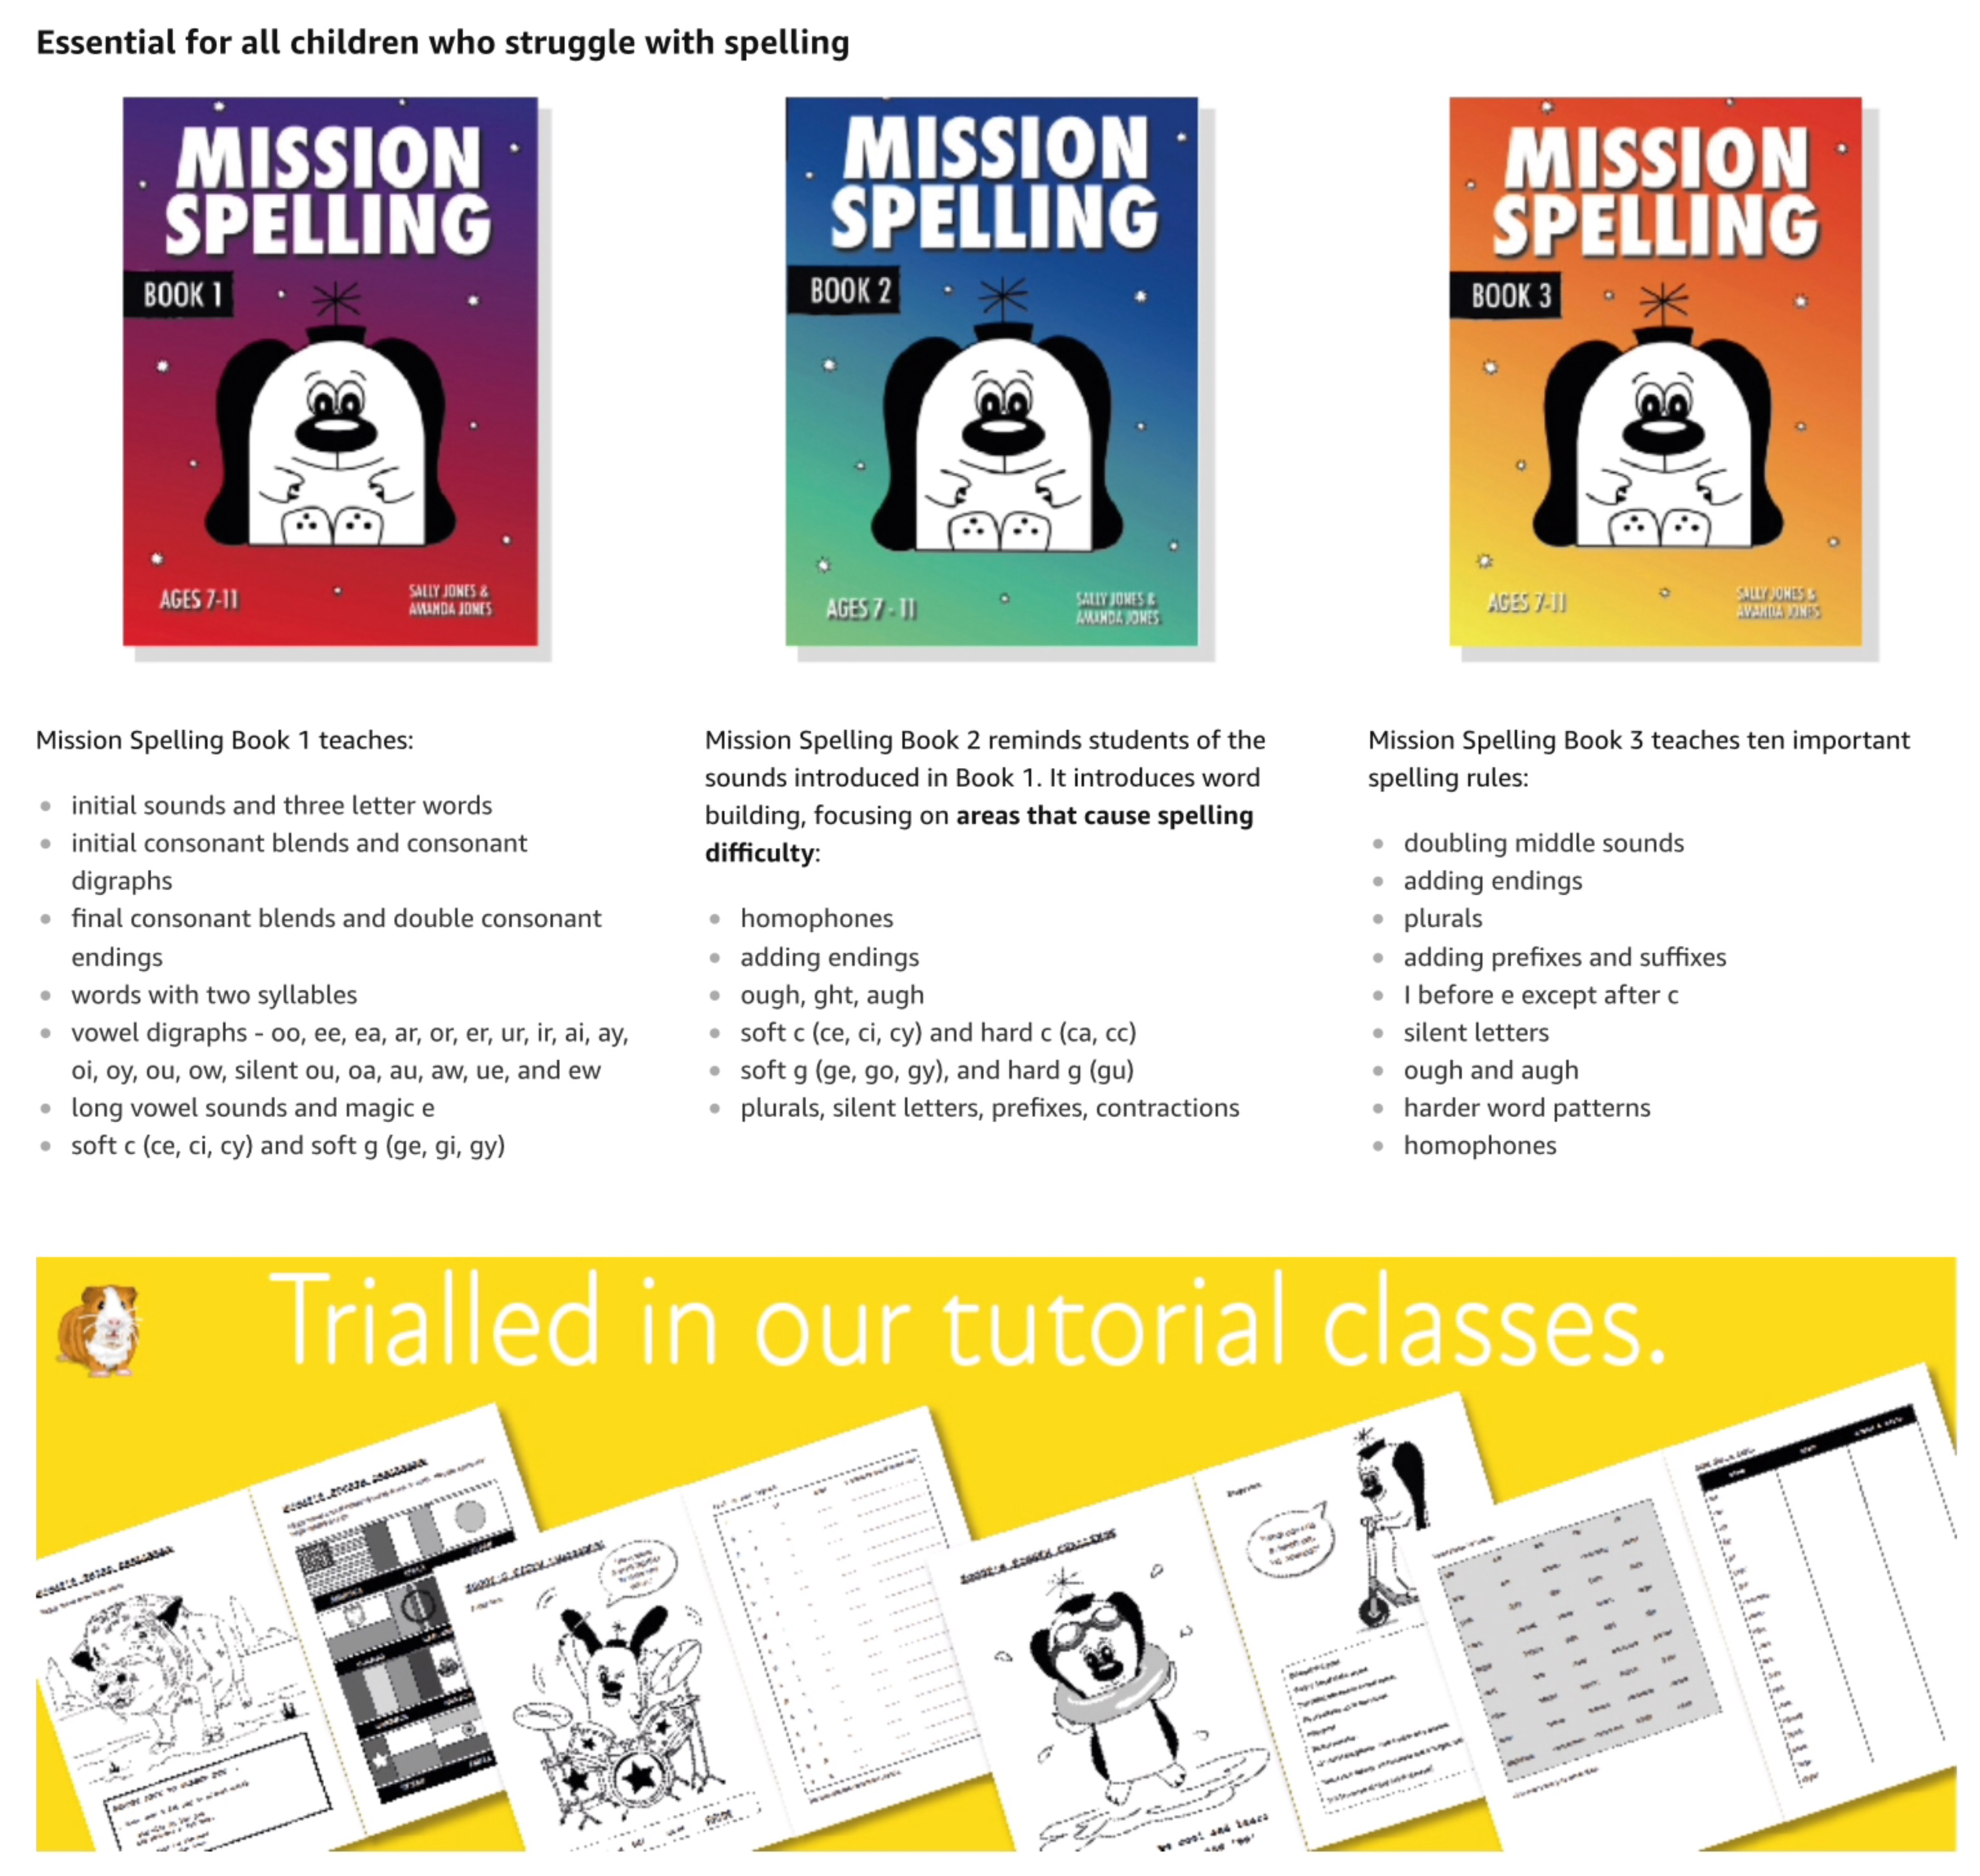 Mission Spelling Book 3 (US English Edition) Grades 2-5